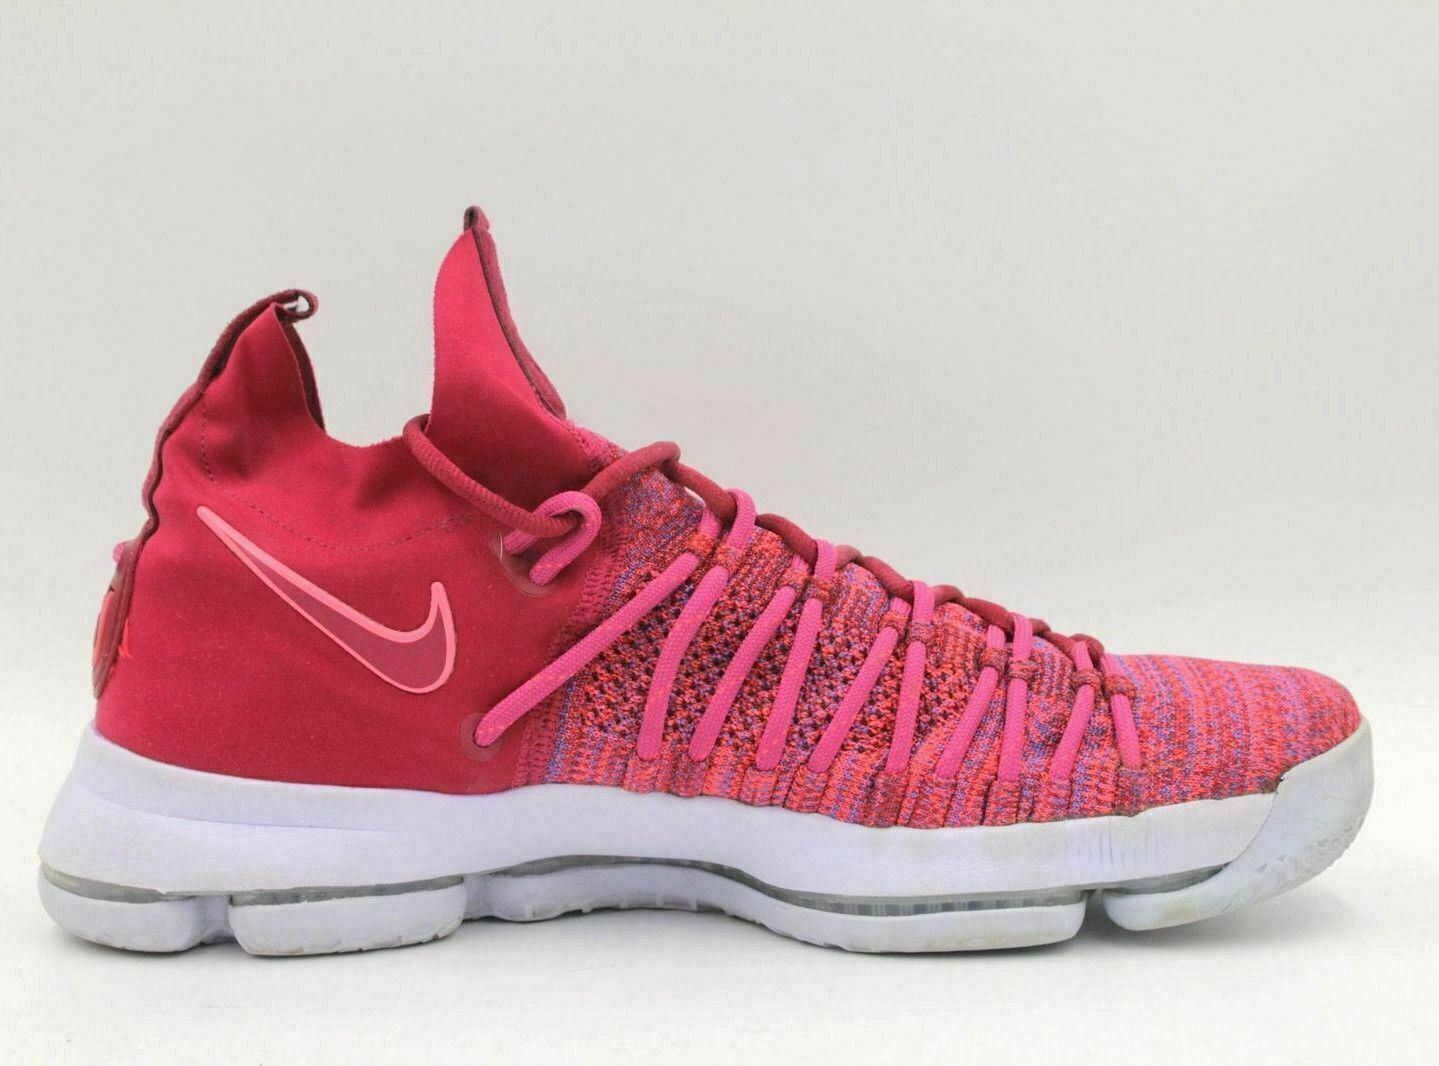 low priced 8cec9 8c2b3 Details about NIKE Zoom KD 9 Elite Wanda Durant MVP Men Basketball Shoes  Size 11 878637-666